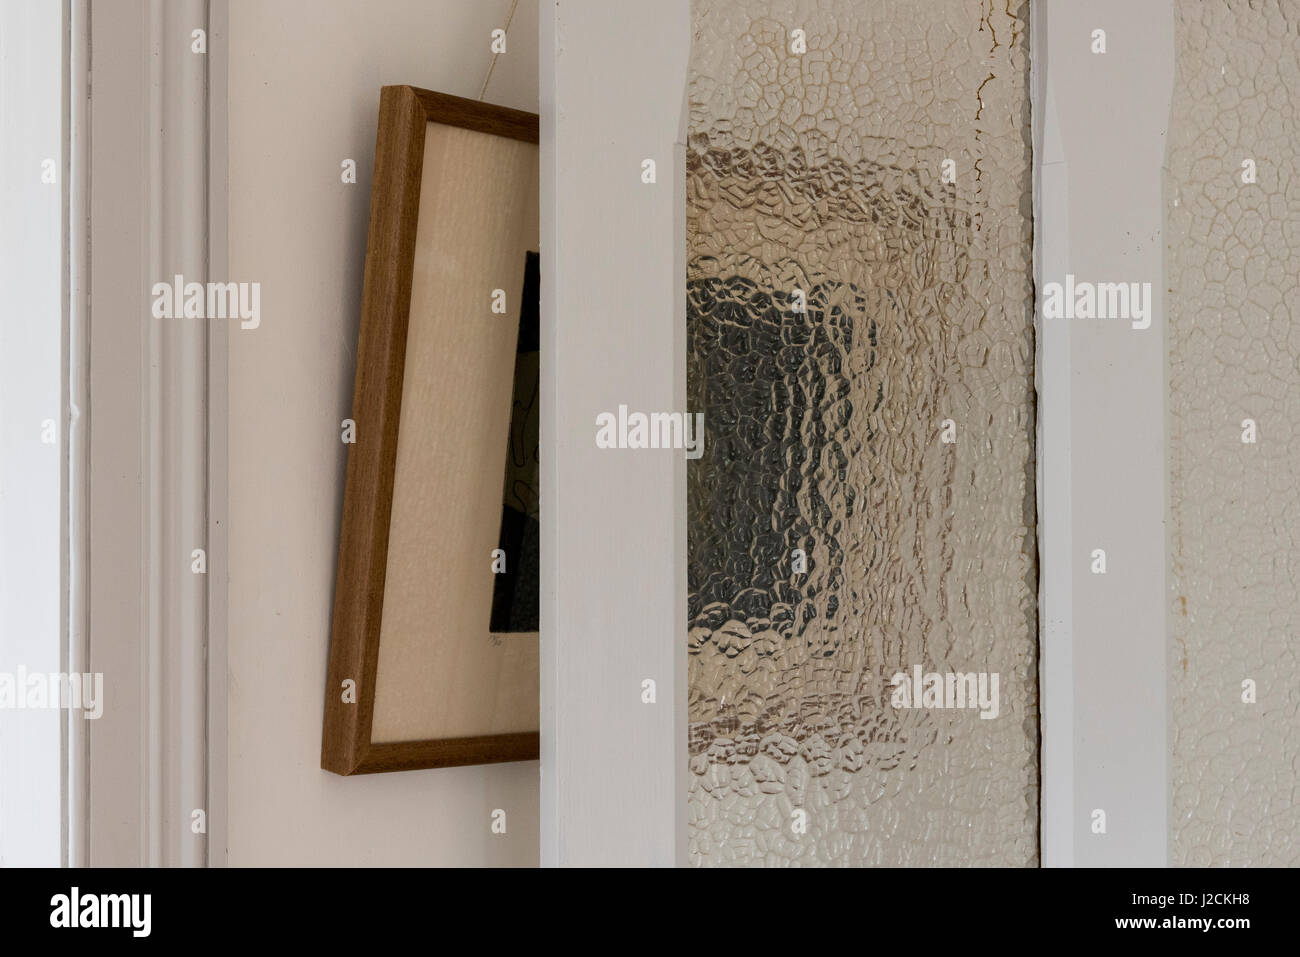 The view of a picture frame seen half directly and half through frosted glass - Stock Image